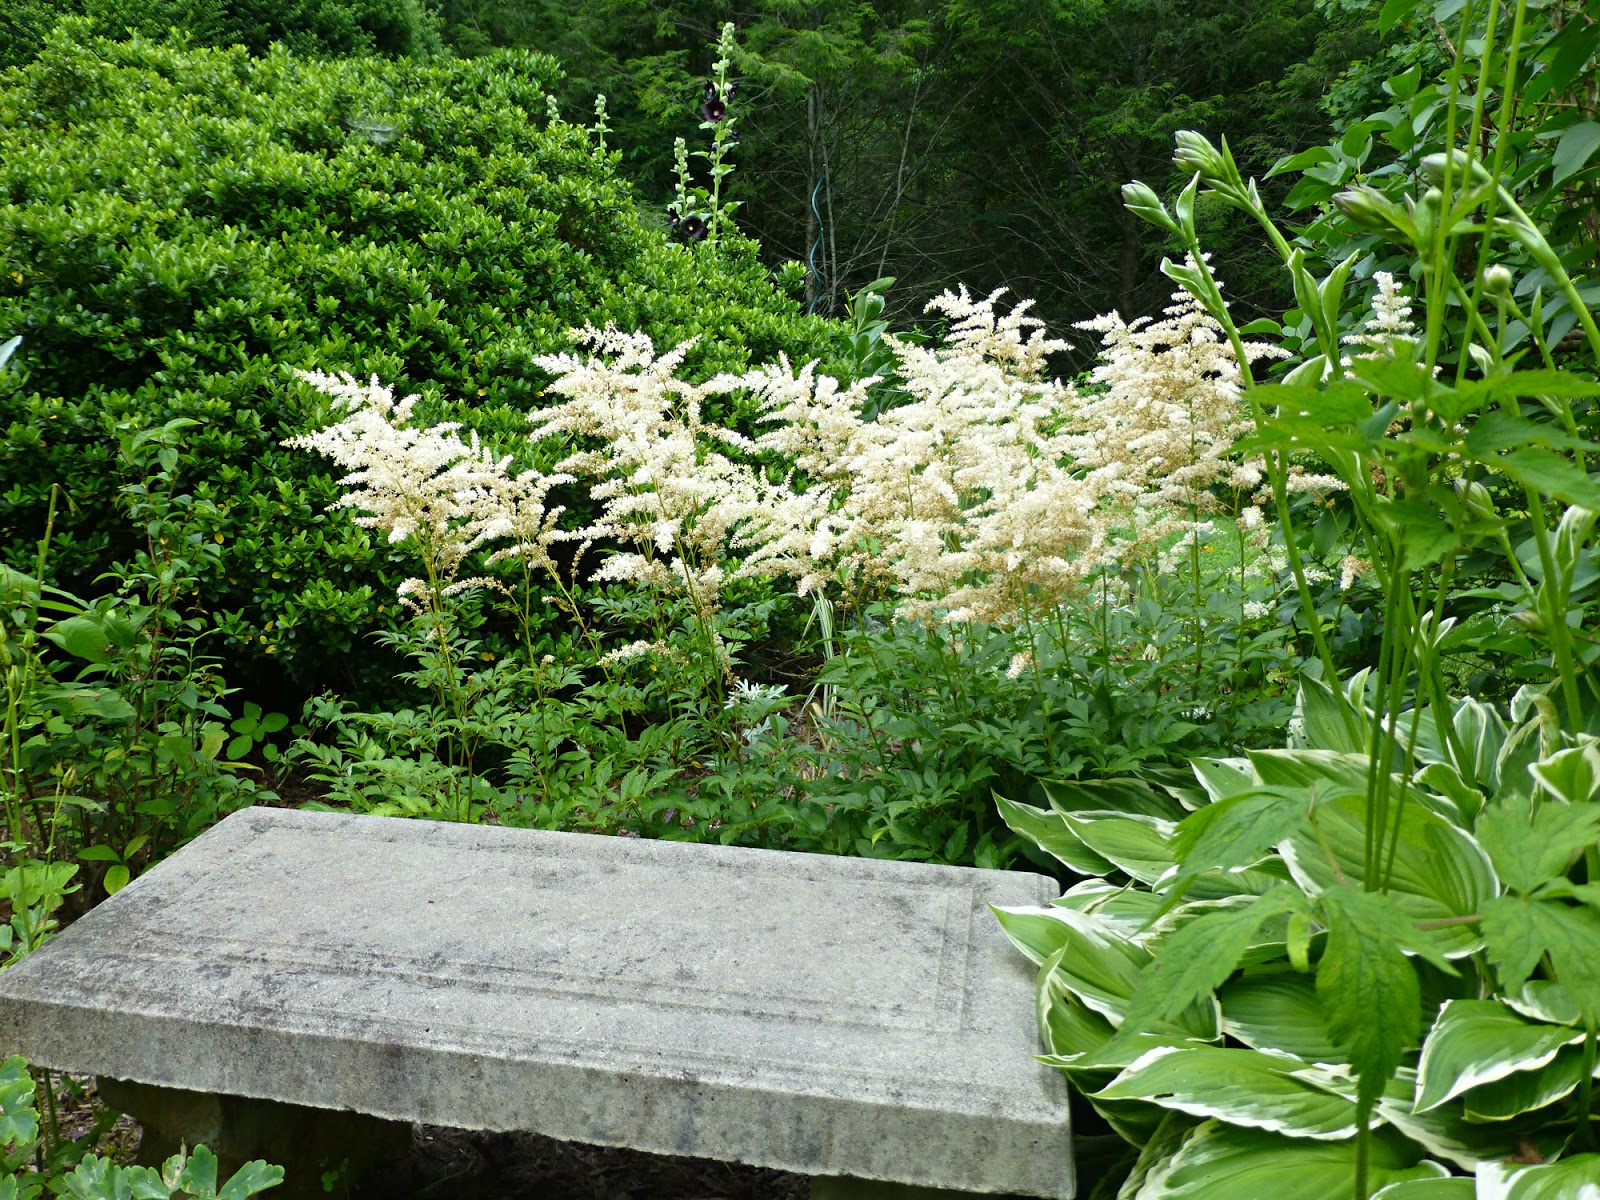 Black and white garden june 2015 update green plants surrounding a concrete garden bench with white plumes of flowers behind it mightylinksfo